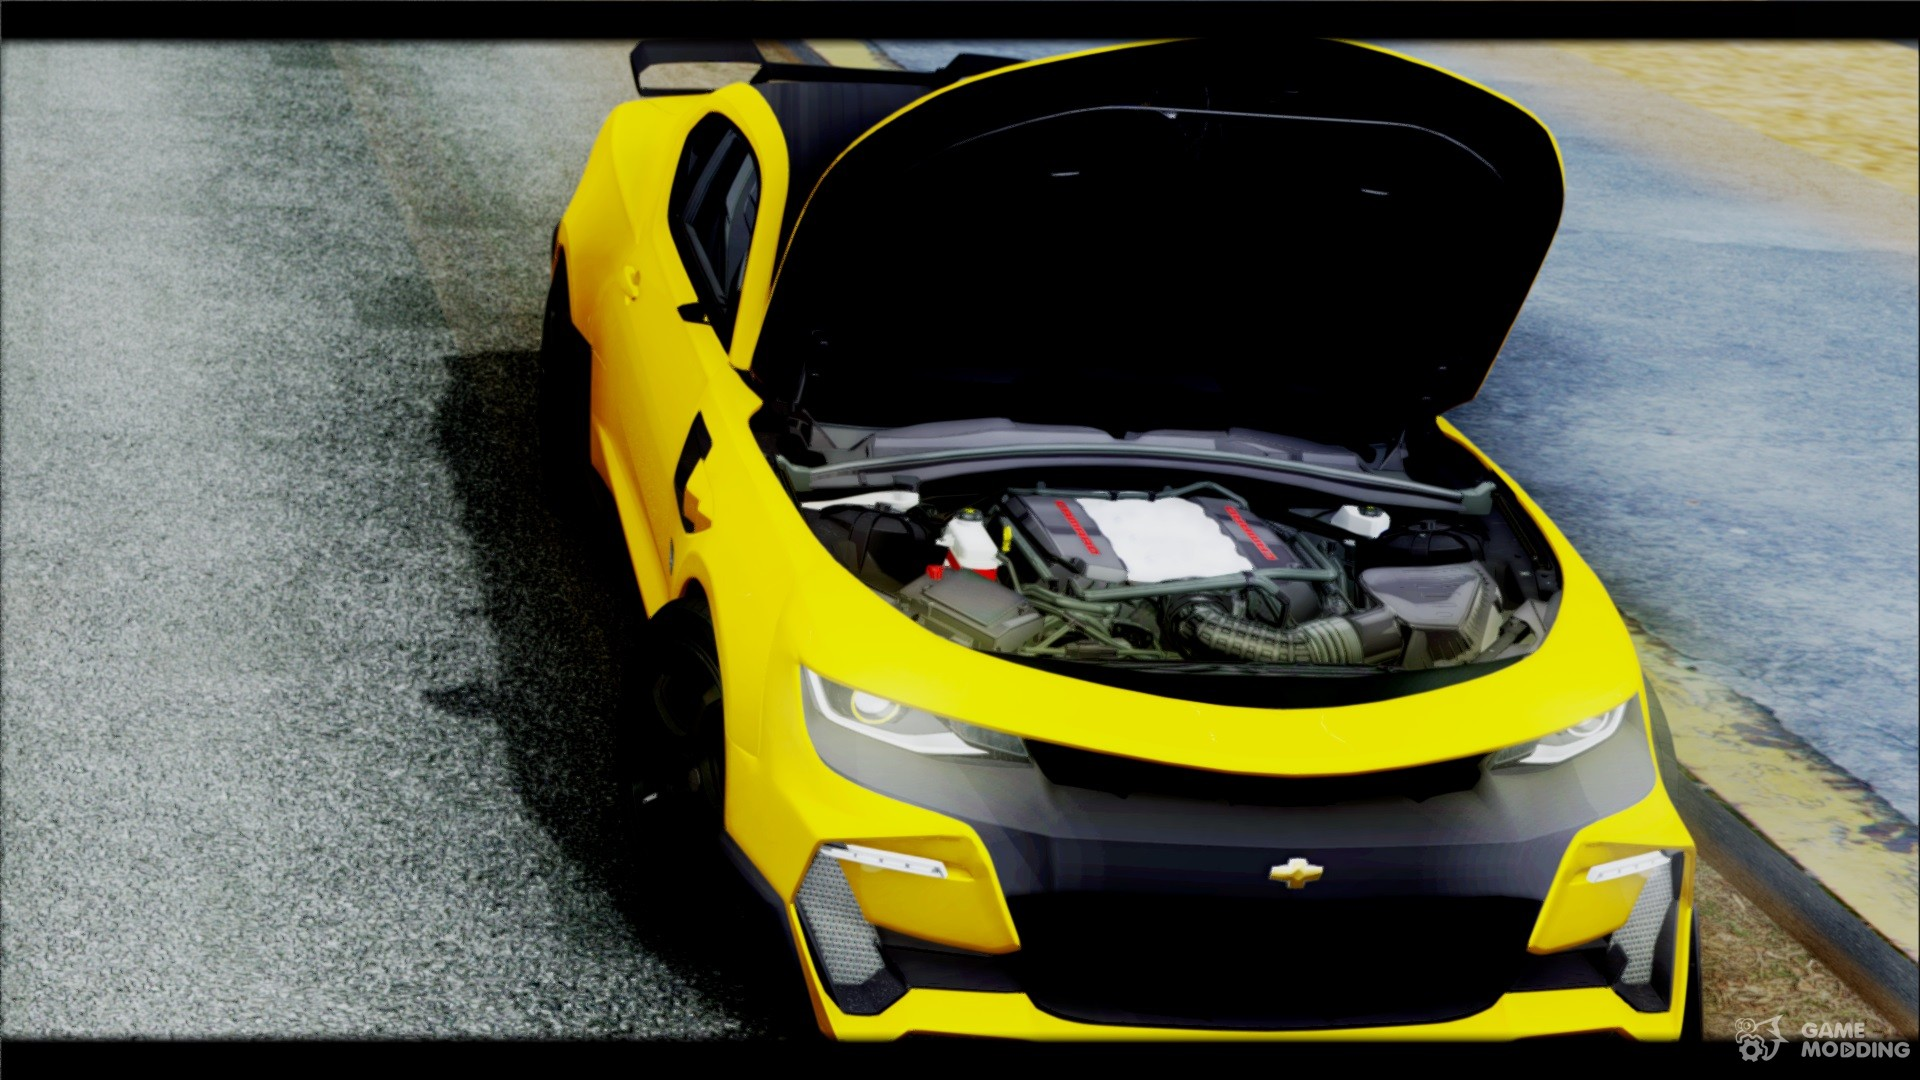 chevrolet camaro transformers 1 html with 66798 Chevrolet Camaro Ss 2016 Bumblebee Transformers 5 V11 on Bumblebee Transformers 4 1967 besides 2016 Camaro Ss Gets Bumblebee Visual Treatment Celebrates Michael Bay S Transformers 5 103667 moreover 2016 Camaro Ss Wallpaper also 8596752 as well 2015 Cobalt Ss.